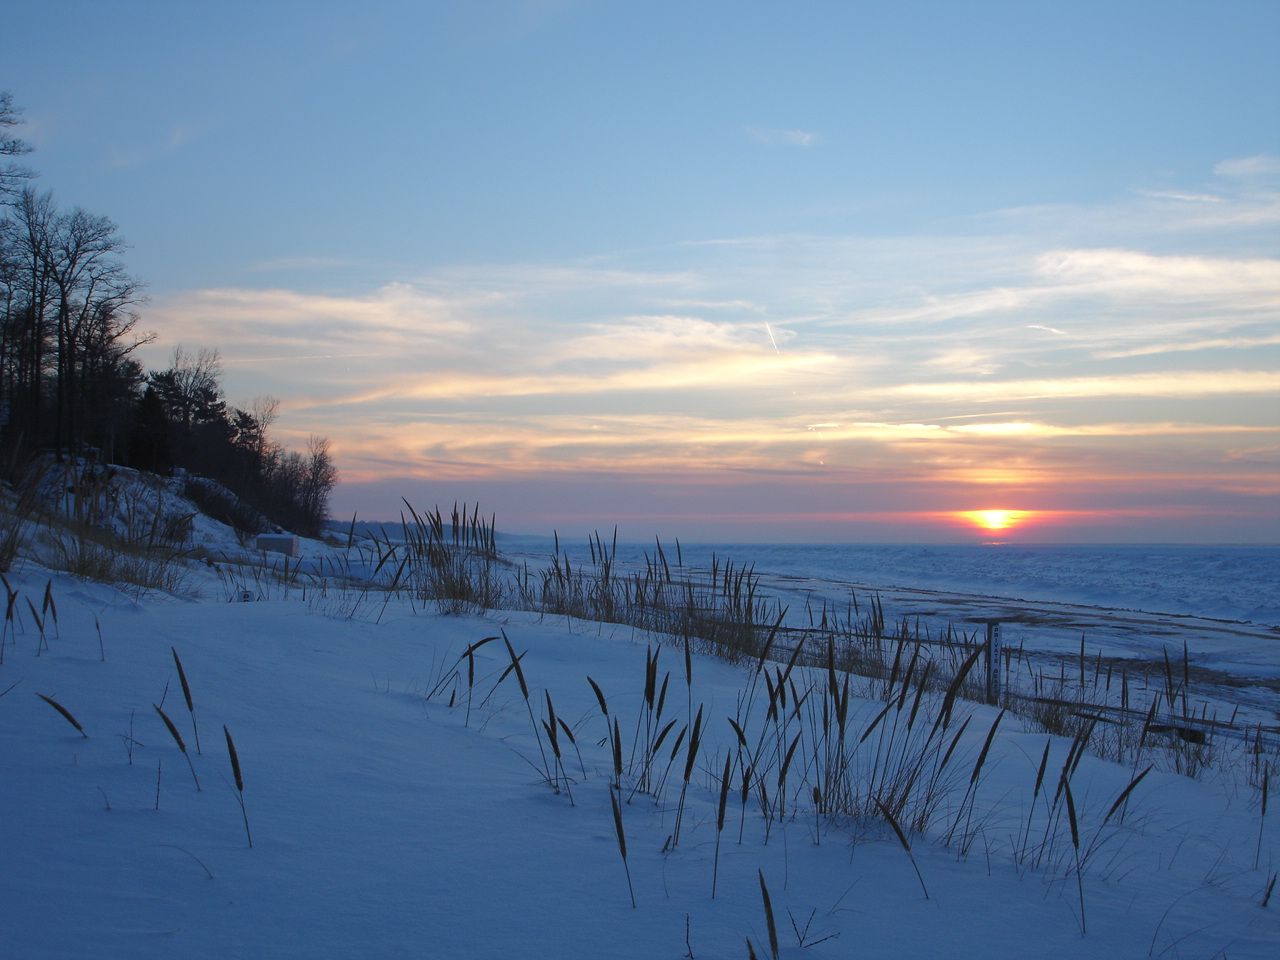 Winter Sunset at Pier Rd. Lakeside, MI